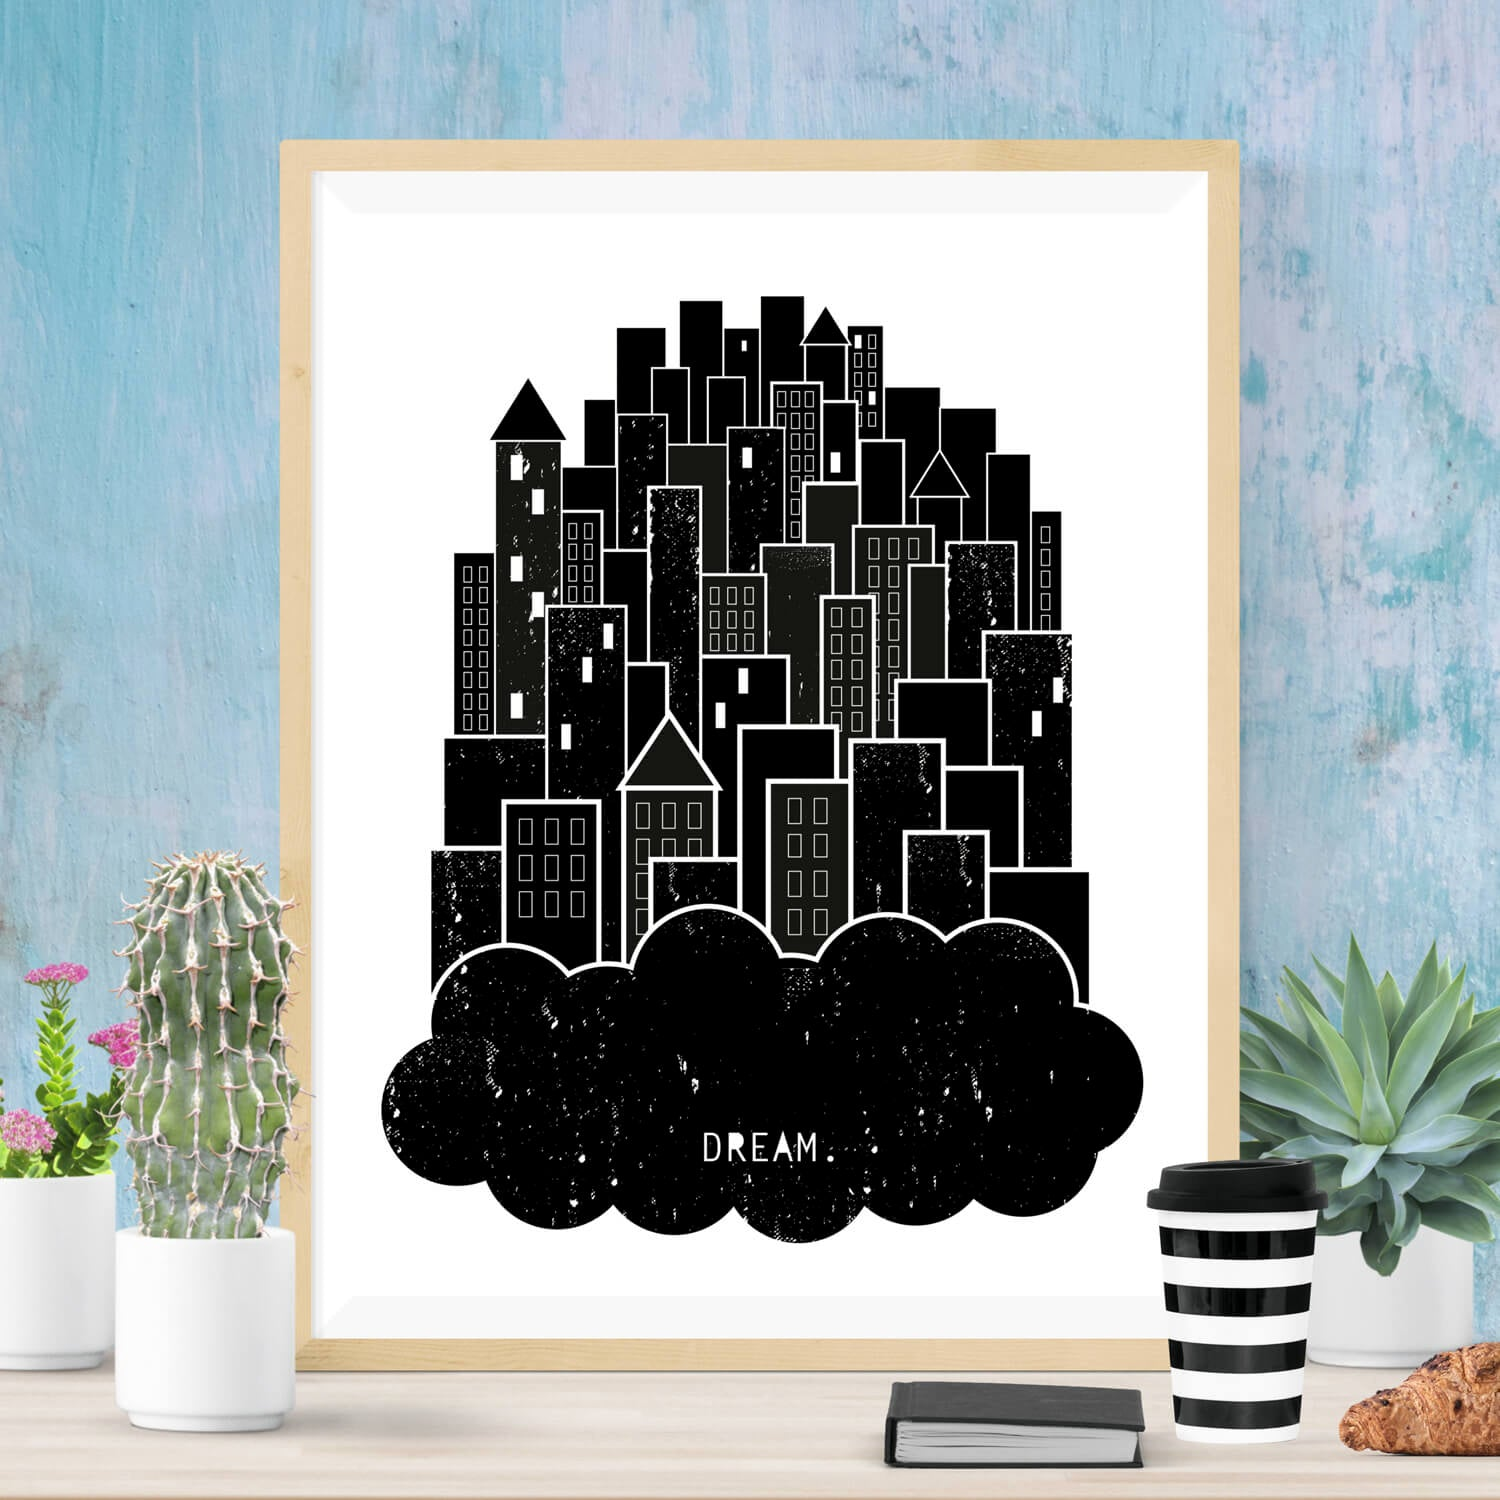 Dream Print - Vision City Design Studio